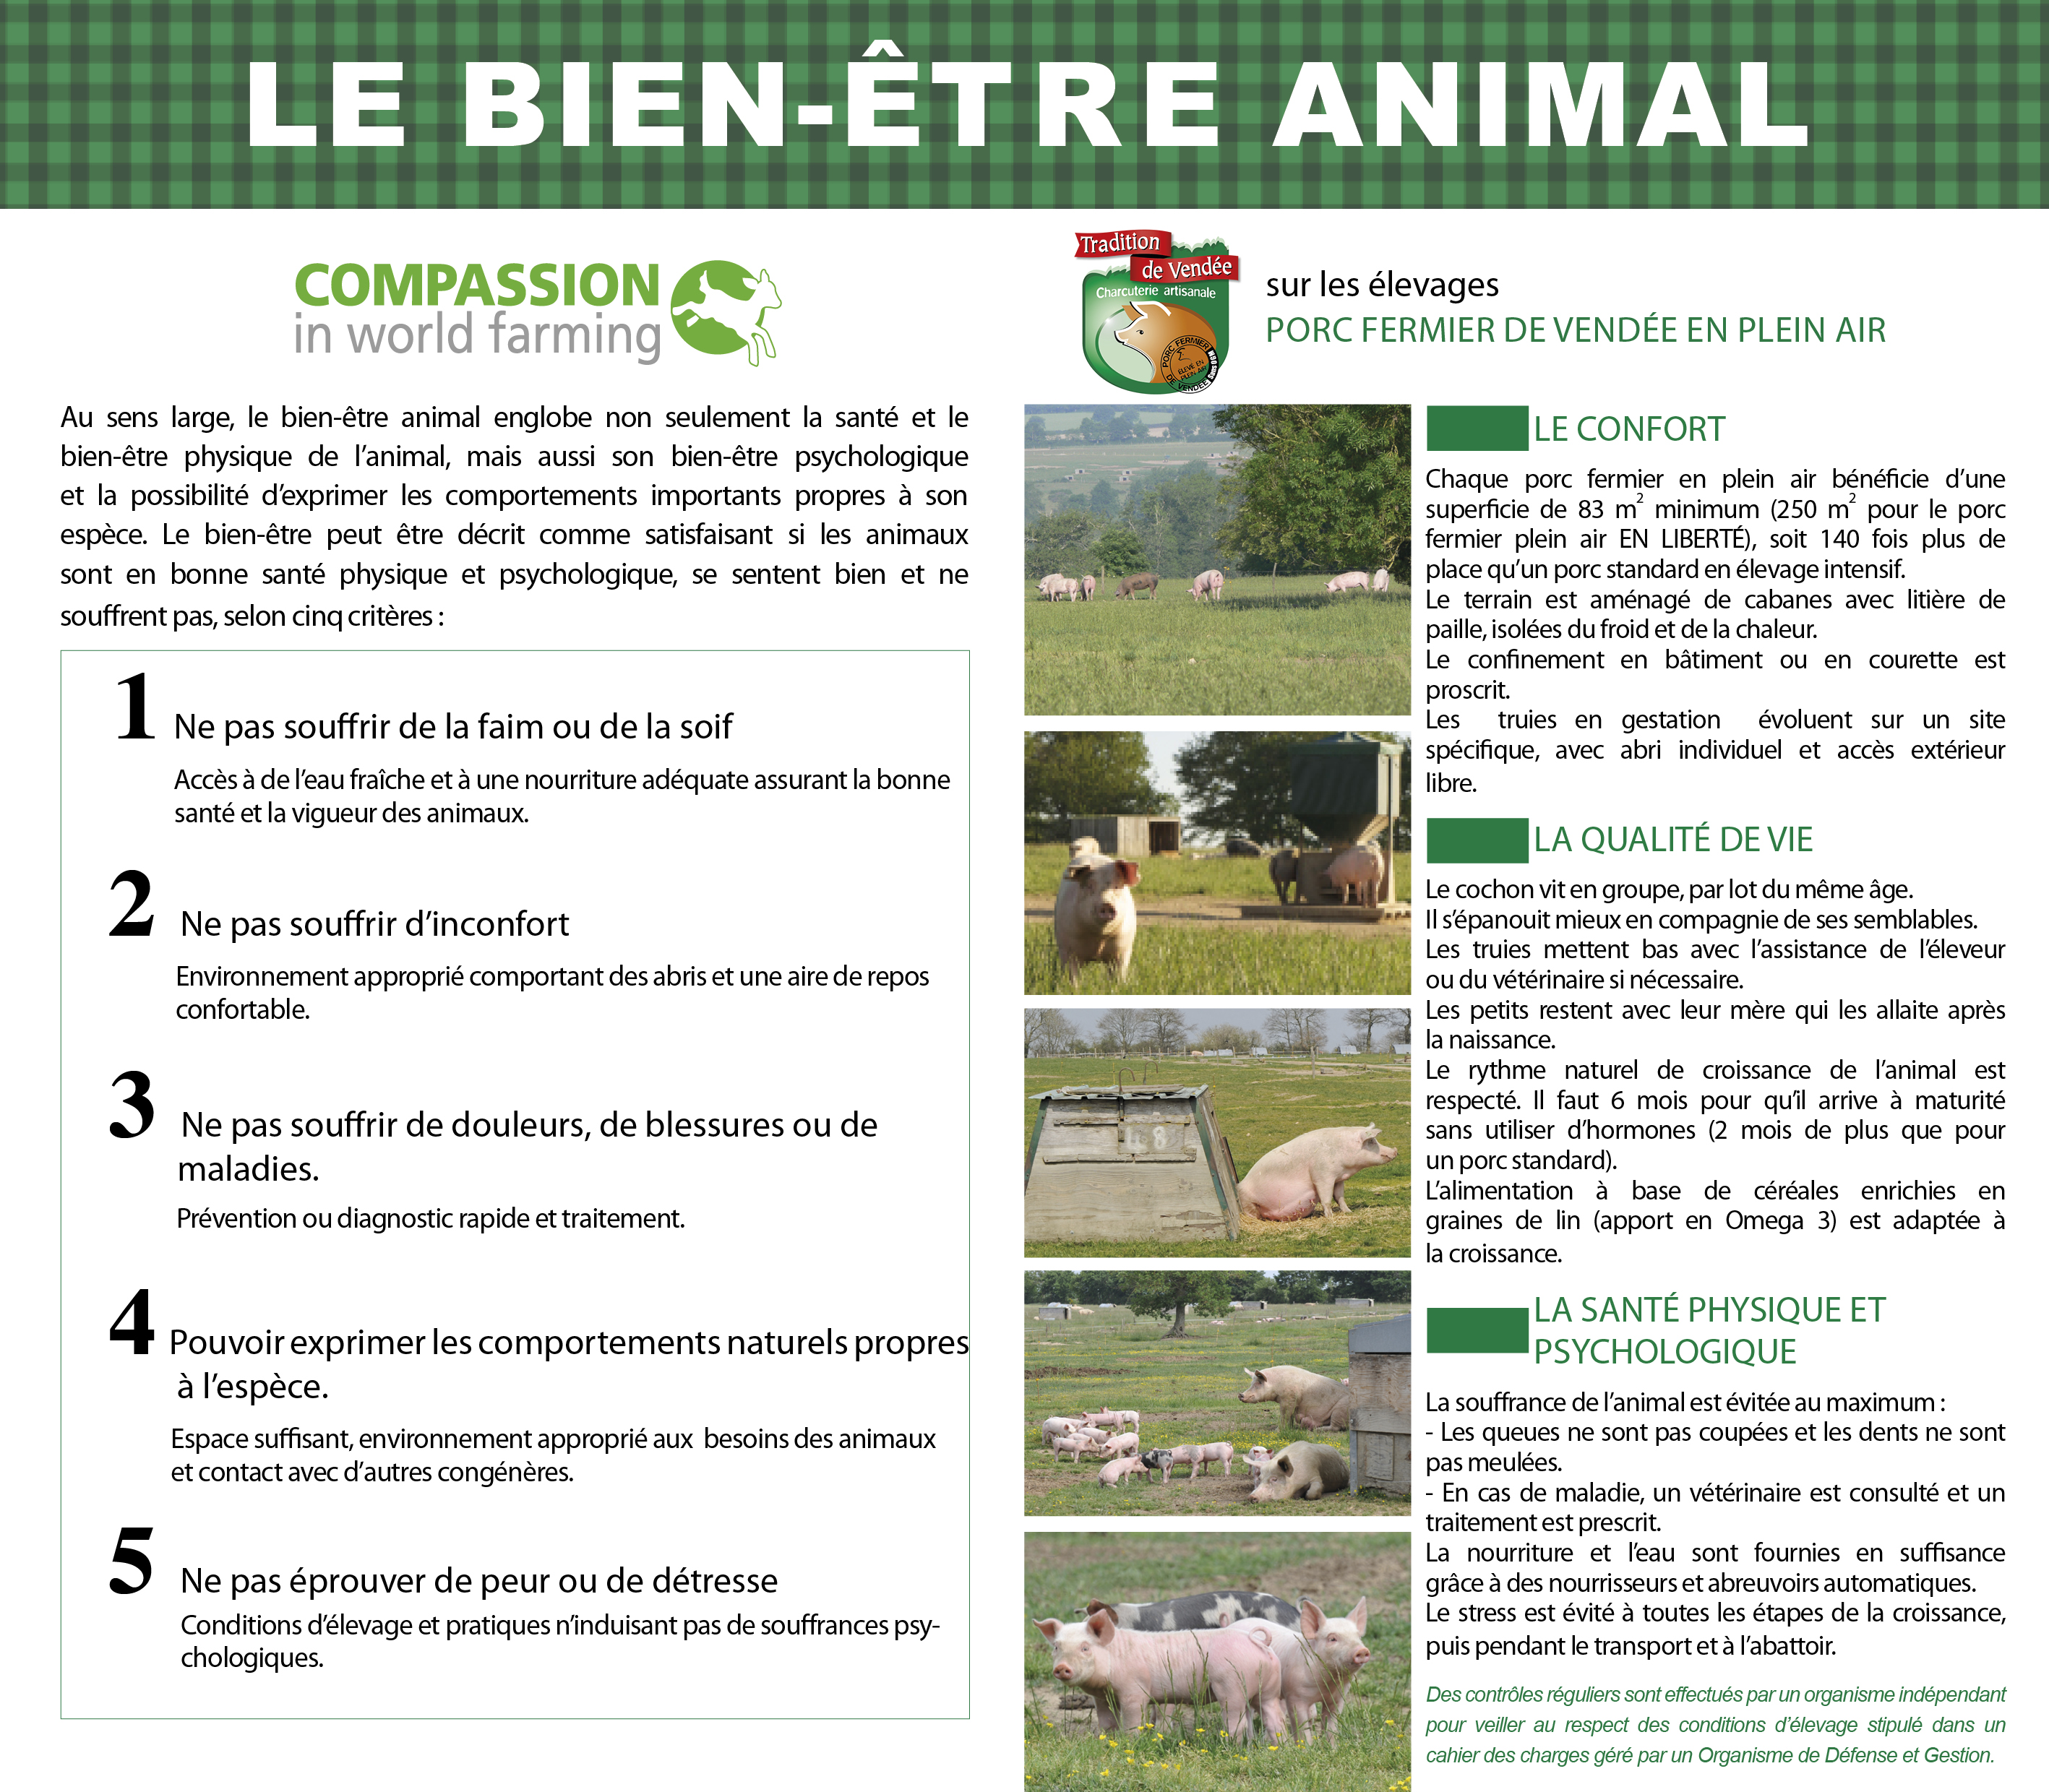 bien-etre-animal-porc-fermier-de-vendee-plein-air